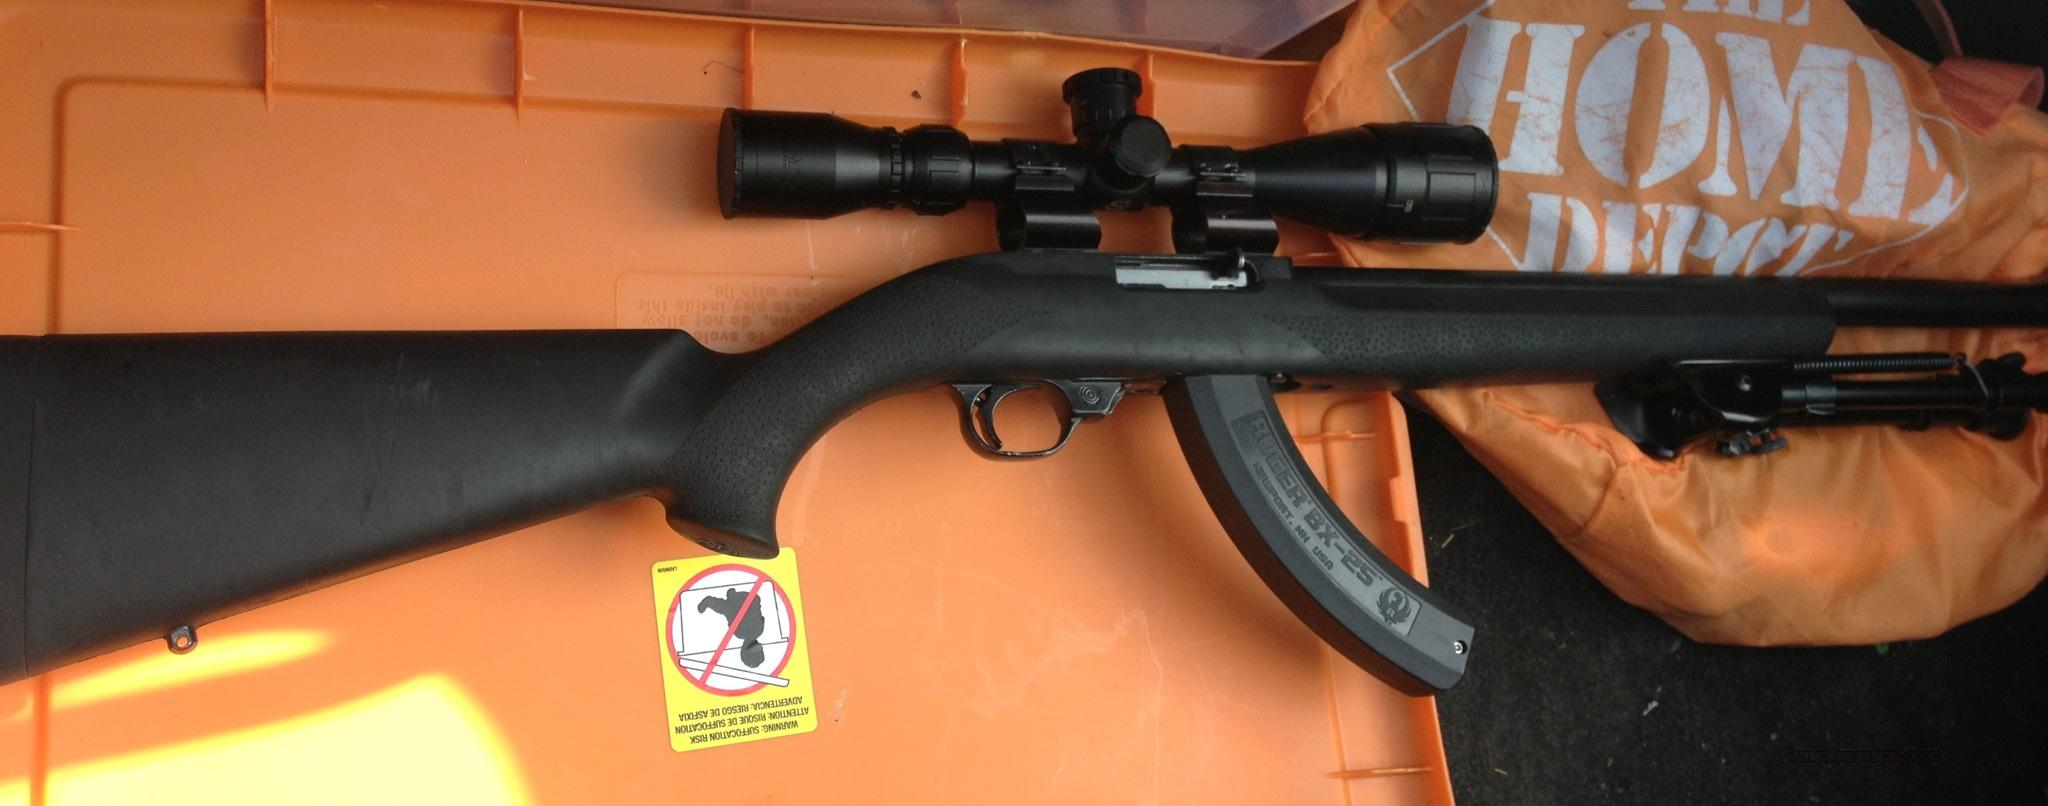 ruger 10 22 tactical modle w/extras  Guns > Rifles > Ruger Rifles > 10-22